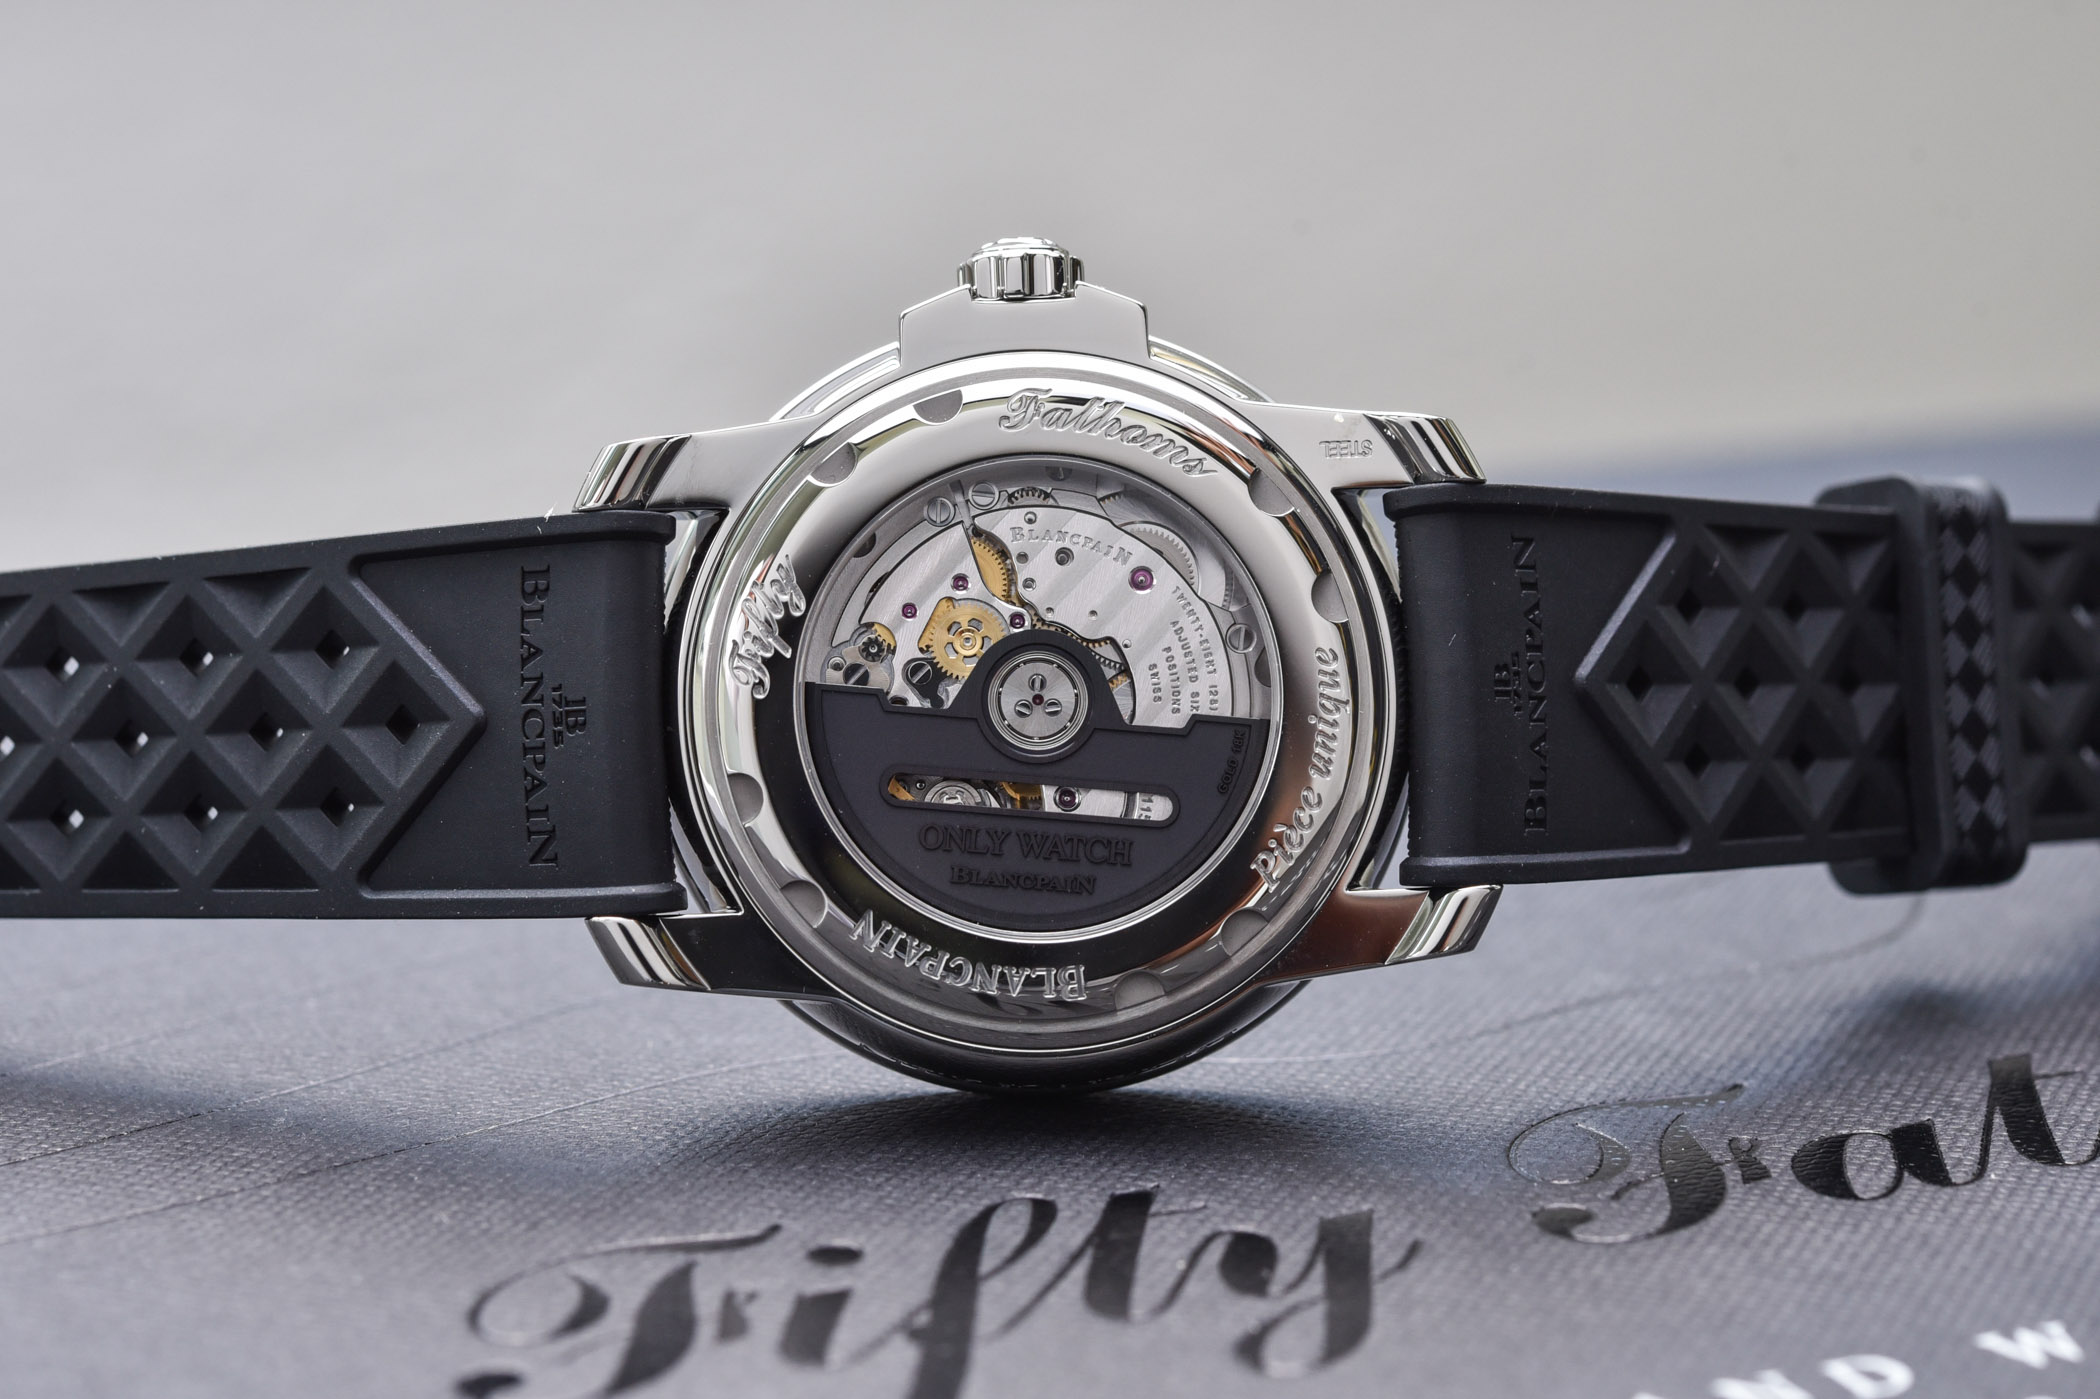 Blancpain Tribute to Fifty Fathoms No Rad for Only Watch 2021